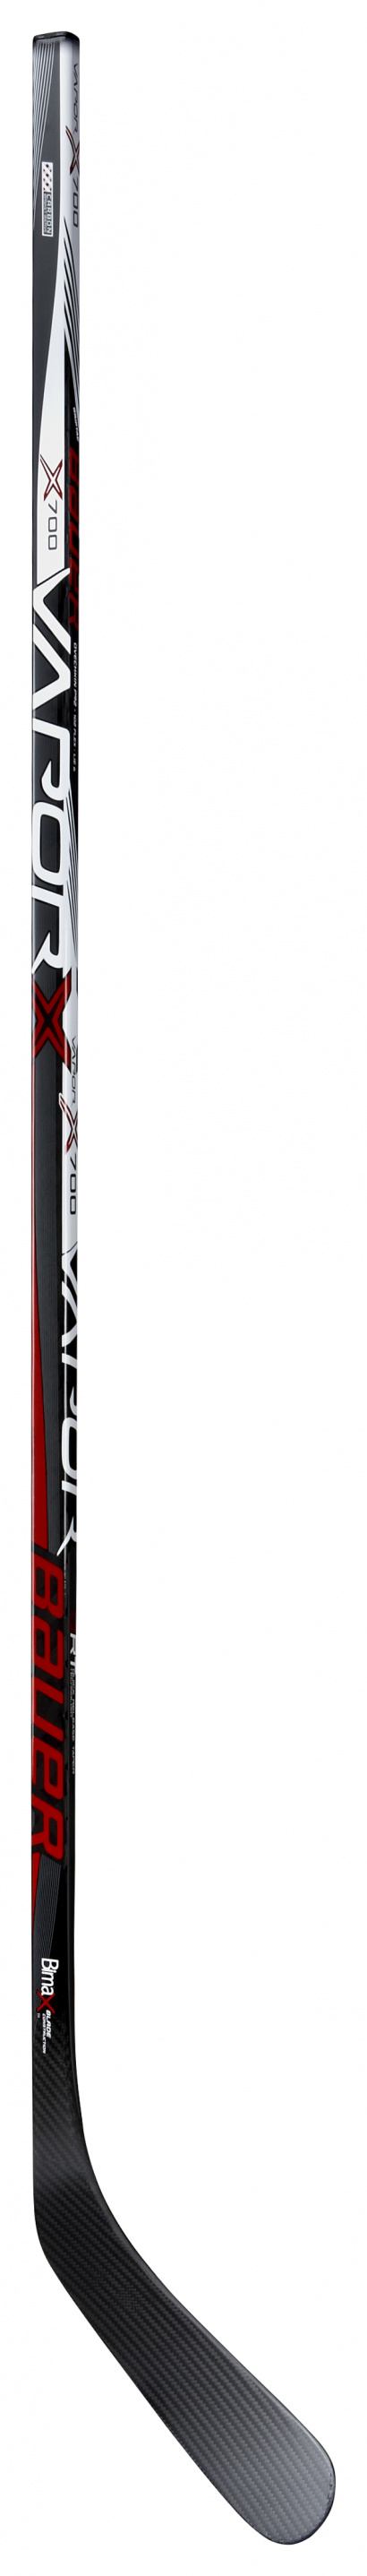 Hockey Stick Bauer VAPOR X 700 GRIP-S16 Int 67